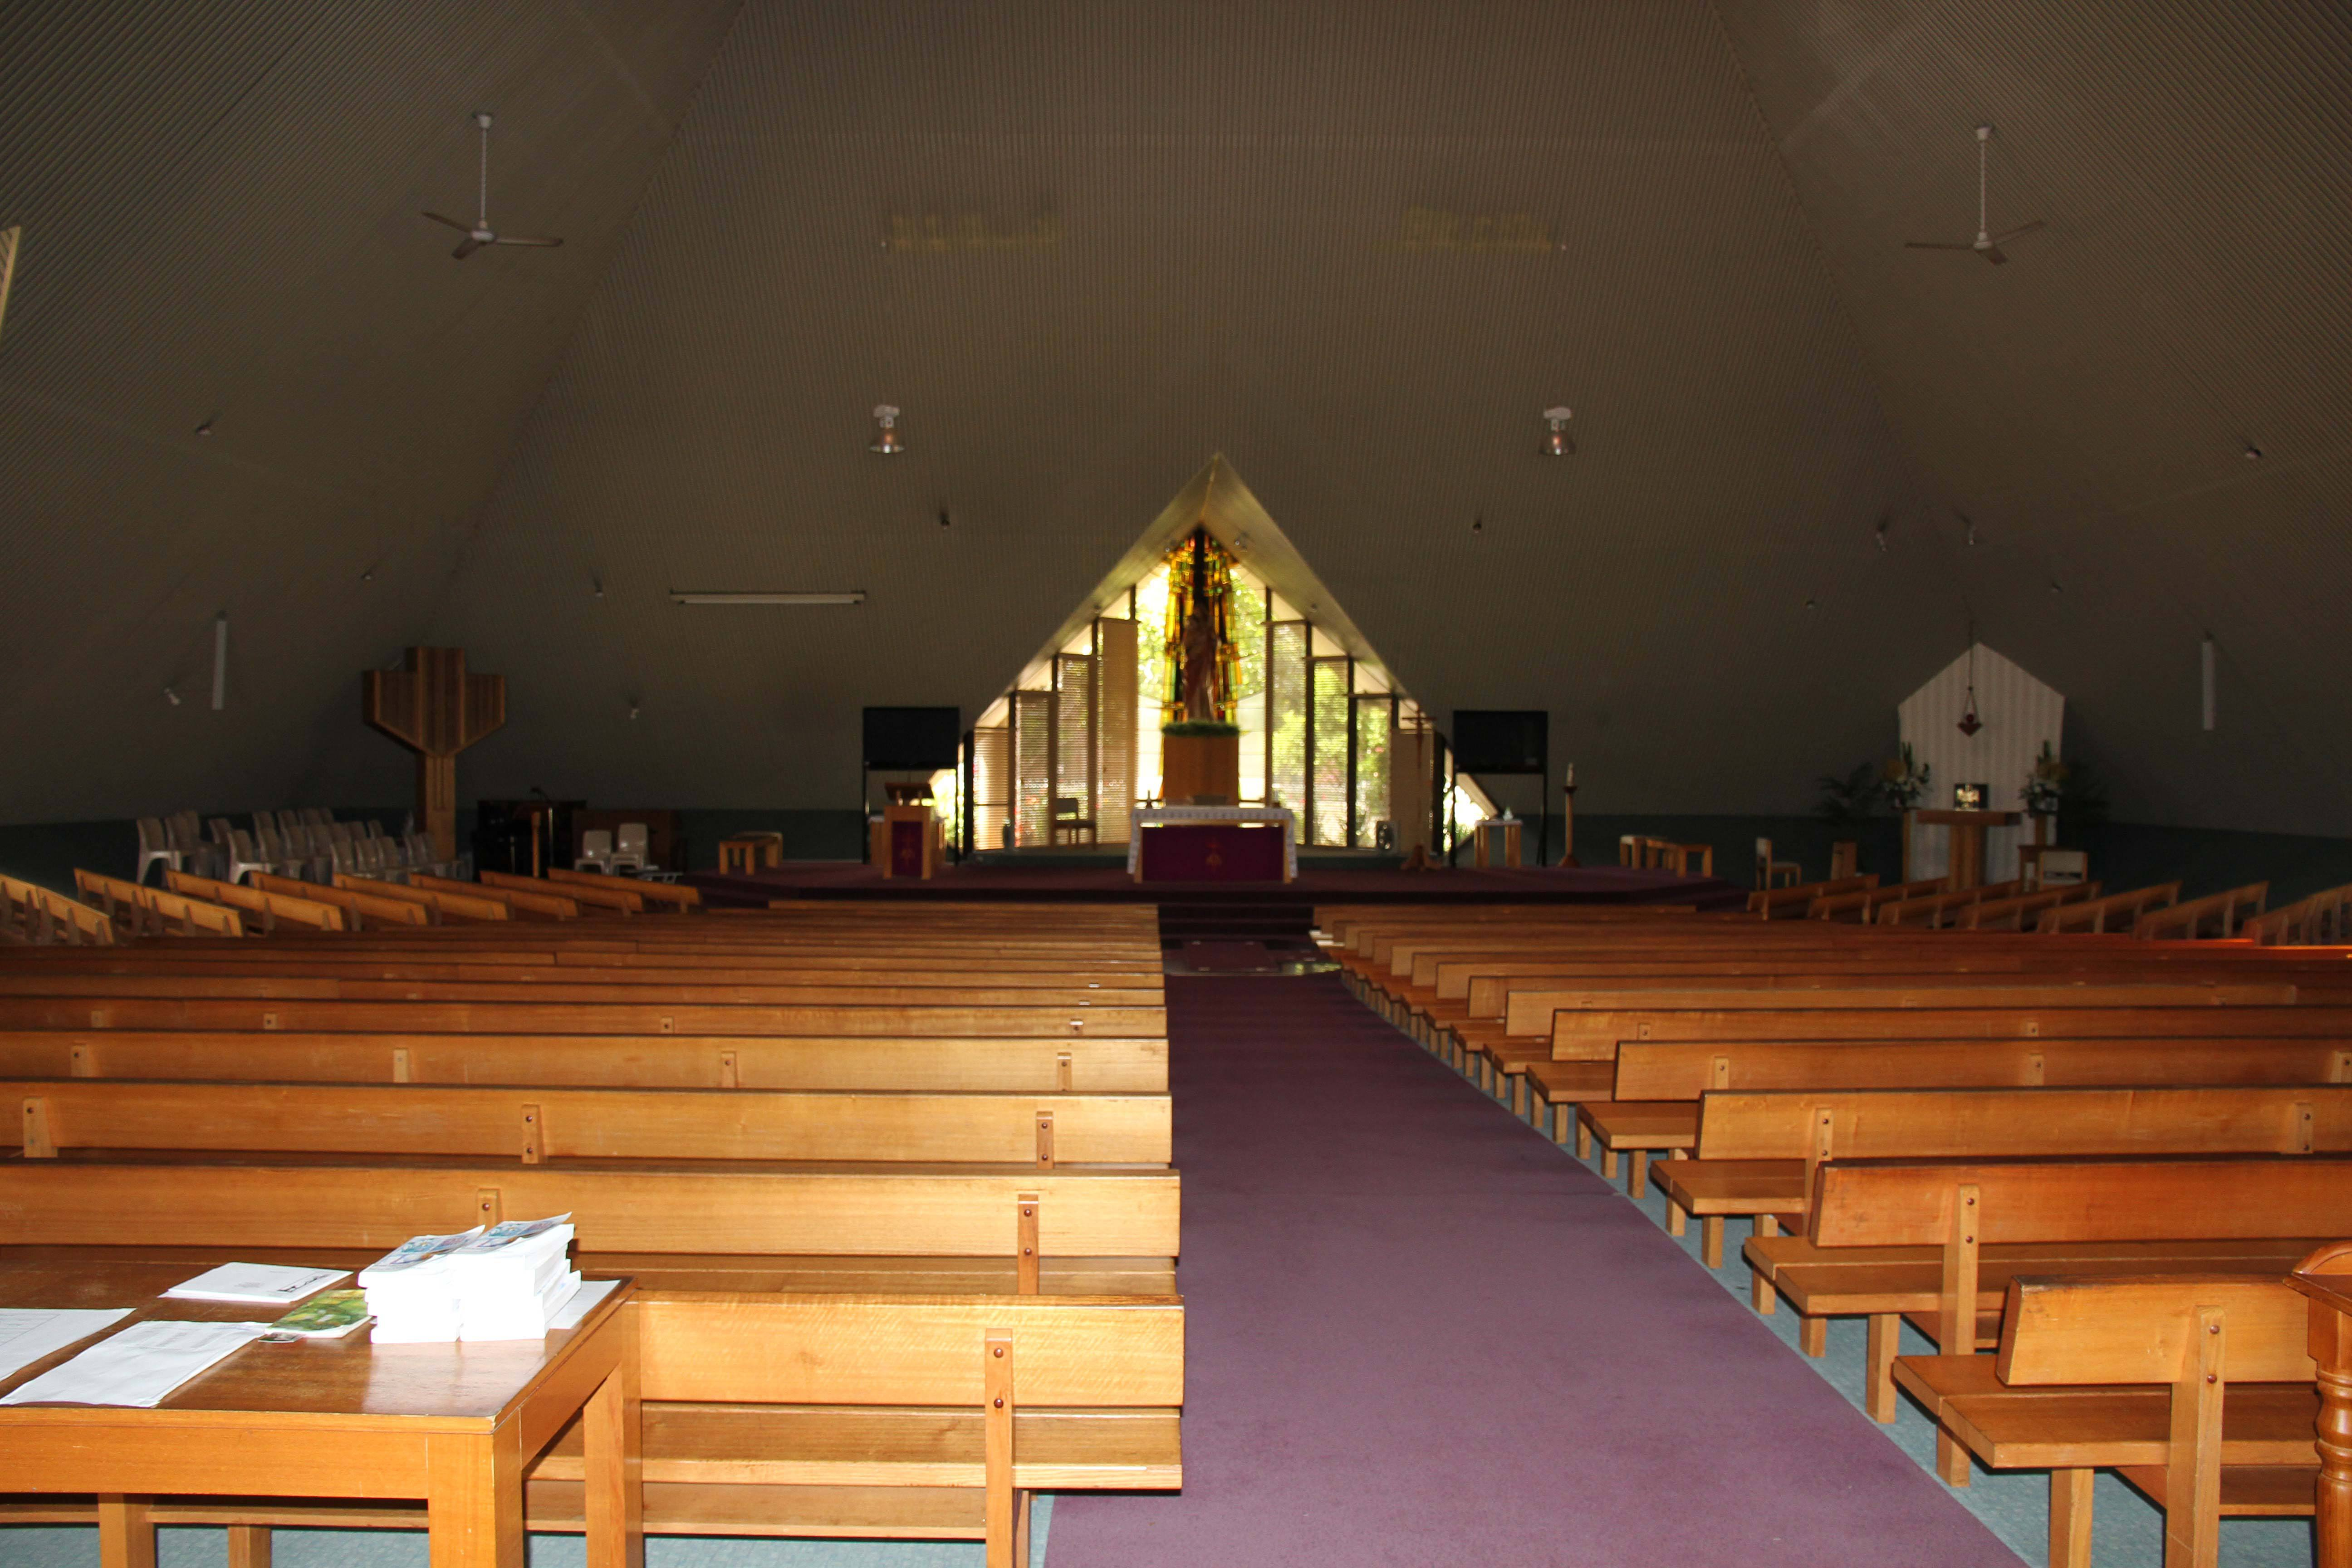 Interior of The Good Shepherd Parish